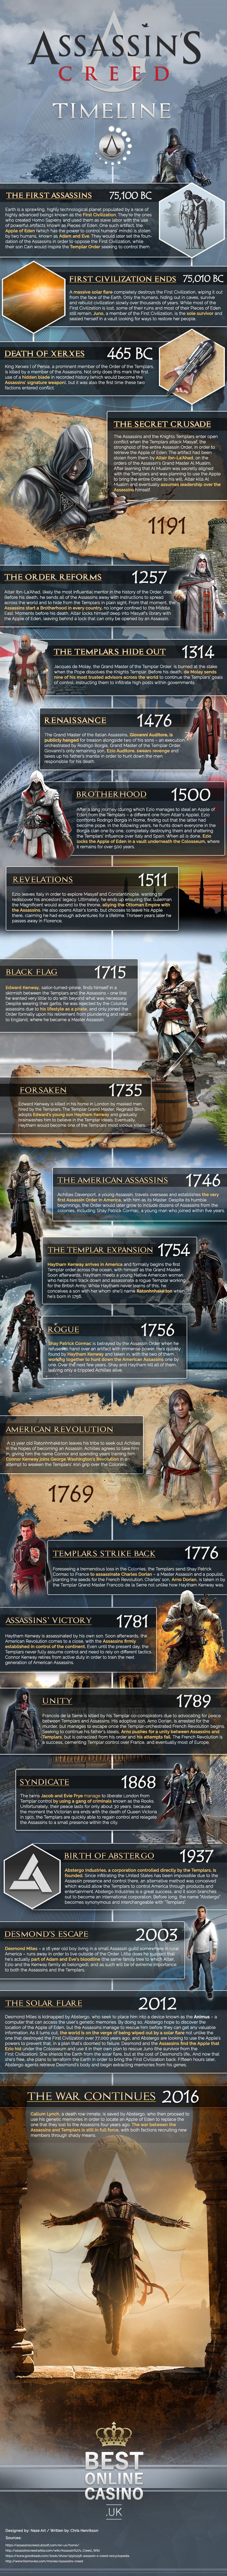 #assassins #assassinscreed #history #assassinscreedgame #assassinscreedtimeline